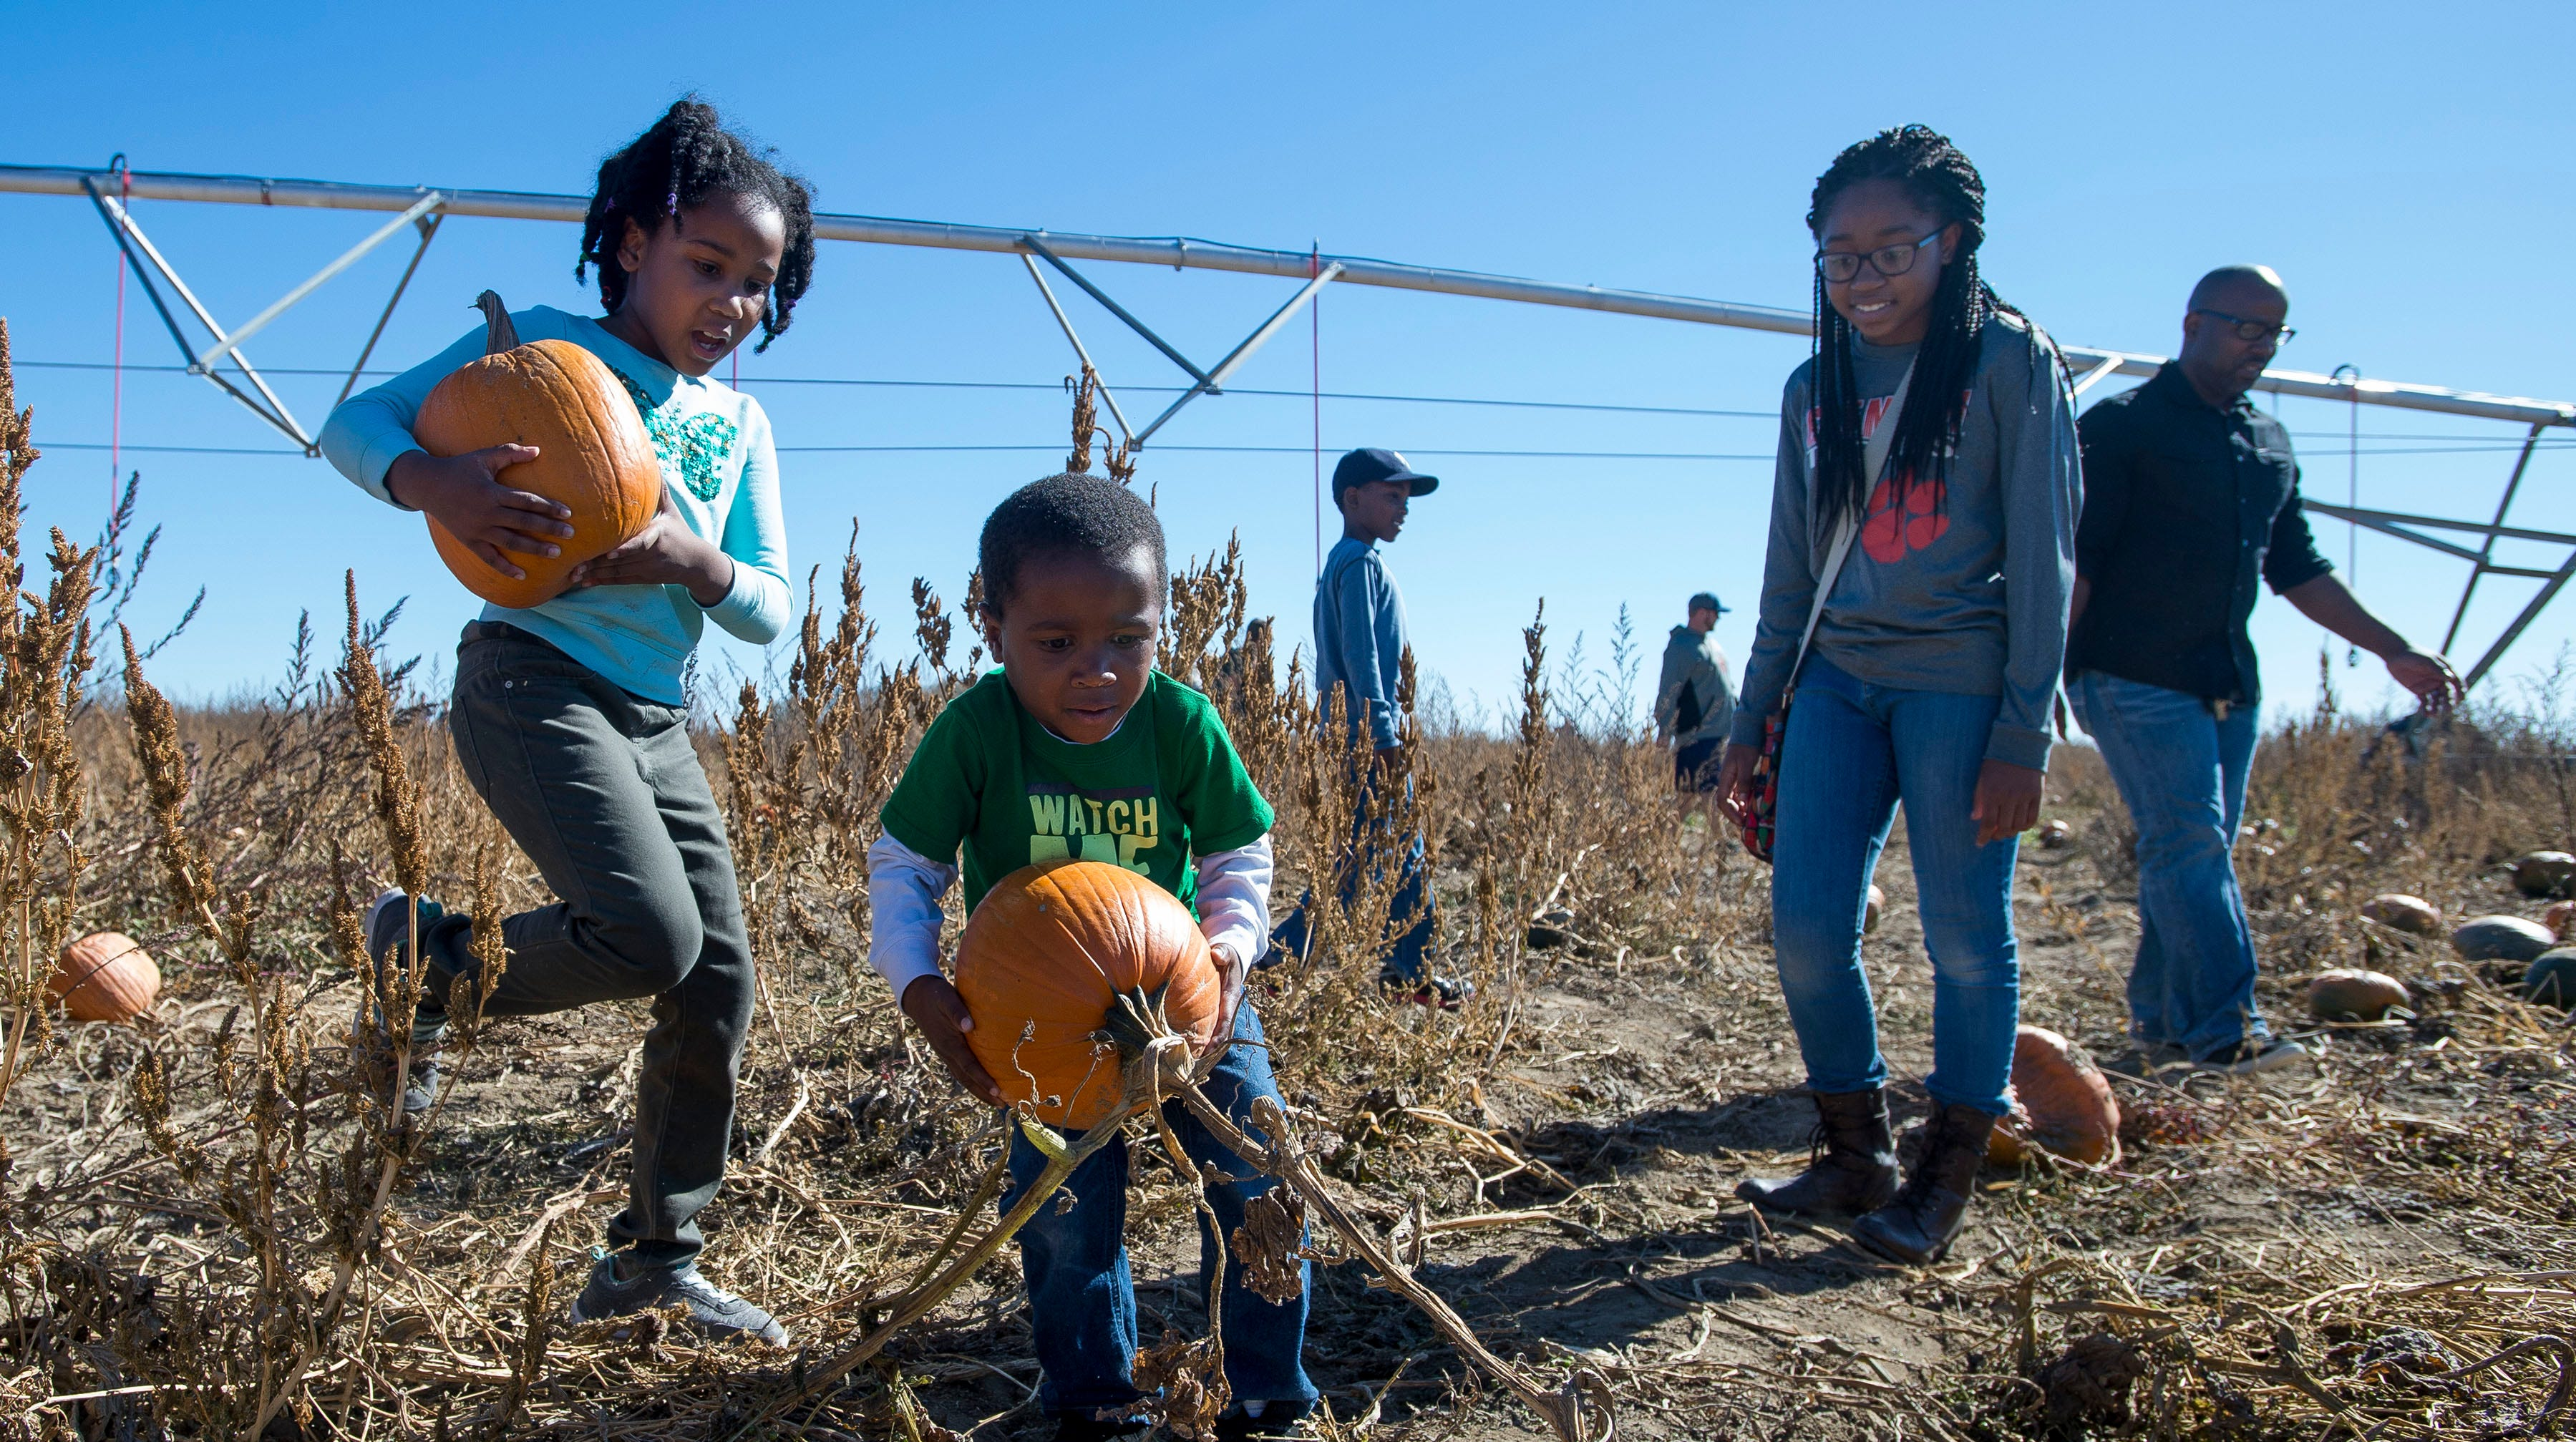 The hunt for the perfect pumpkin is on at Bartels Farm